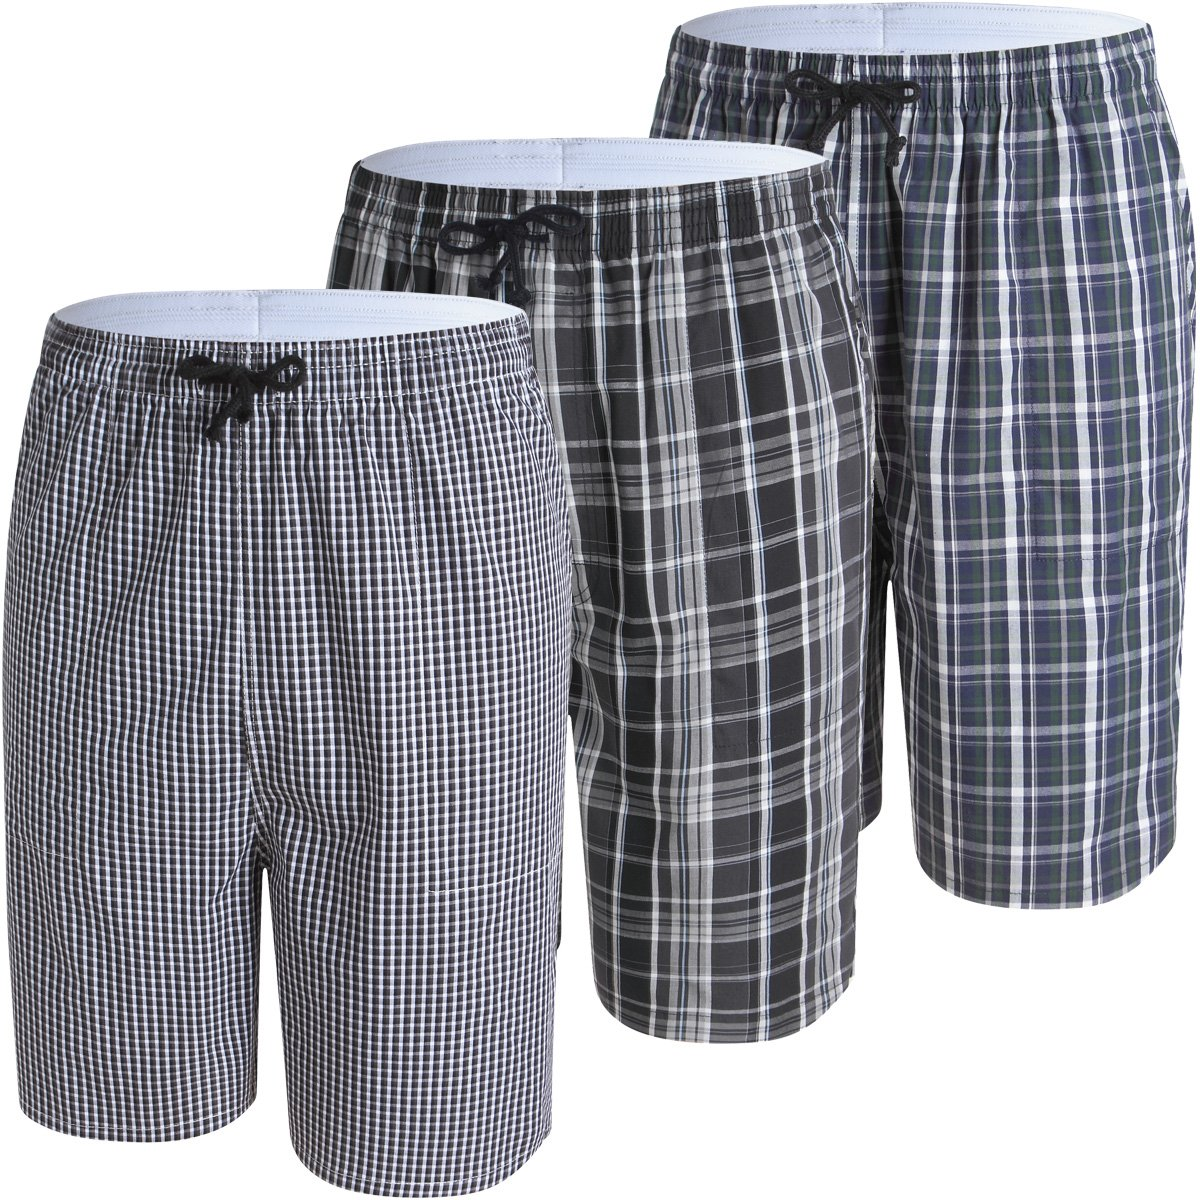 JINSHI Men's Pajama & Sleep Jam Cargo Short Lounge Pants 3Pack